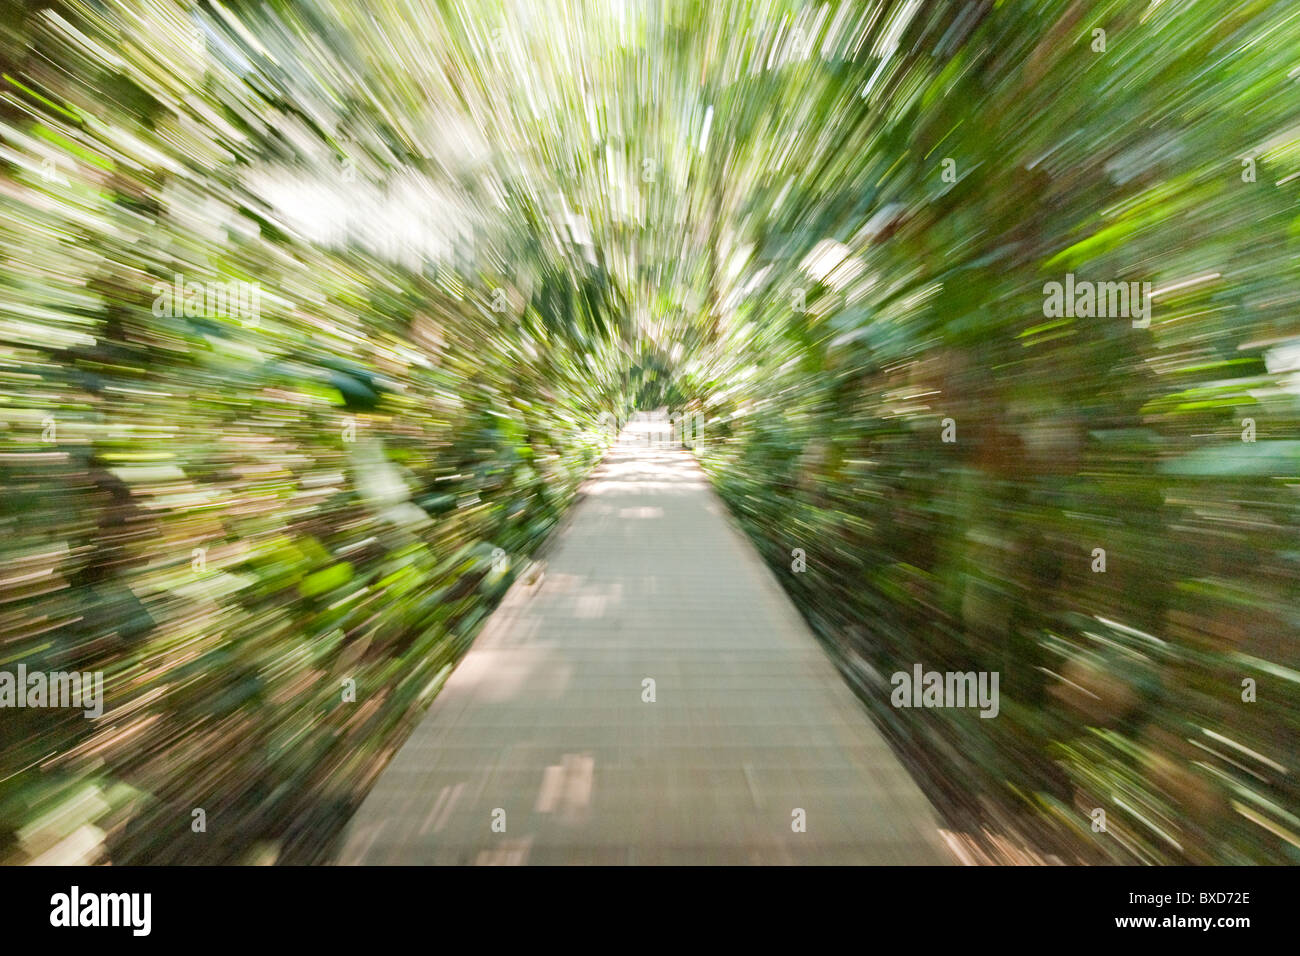 A wooden path through the rainforest in warped speed. - Stock Image